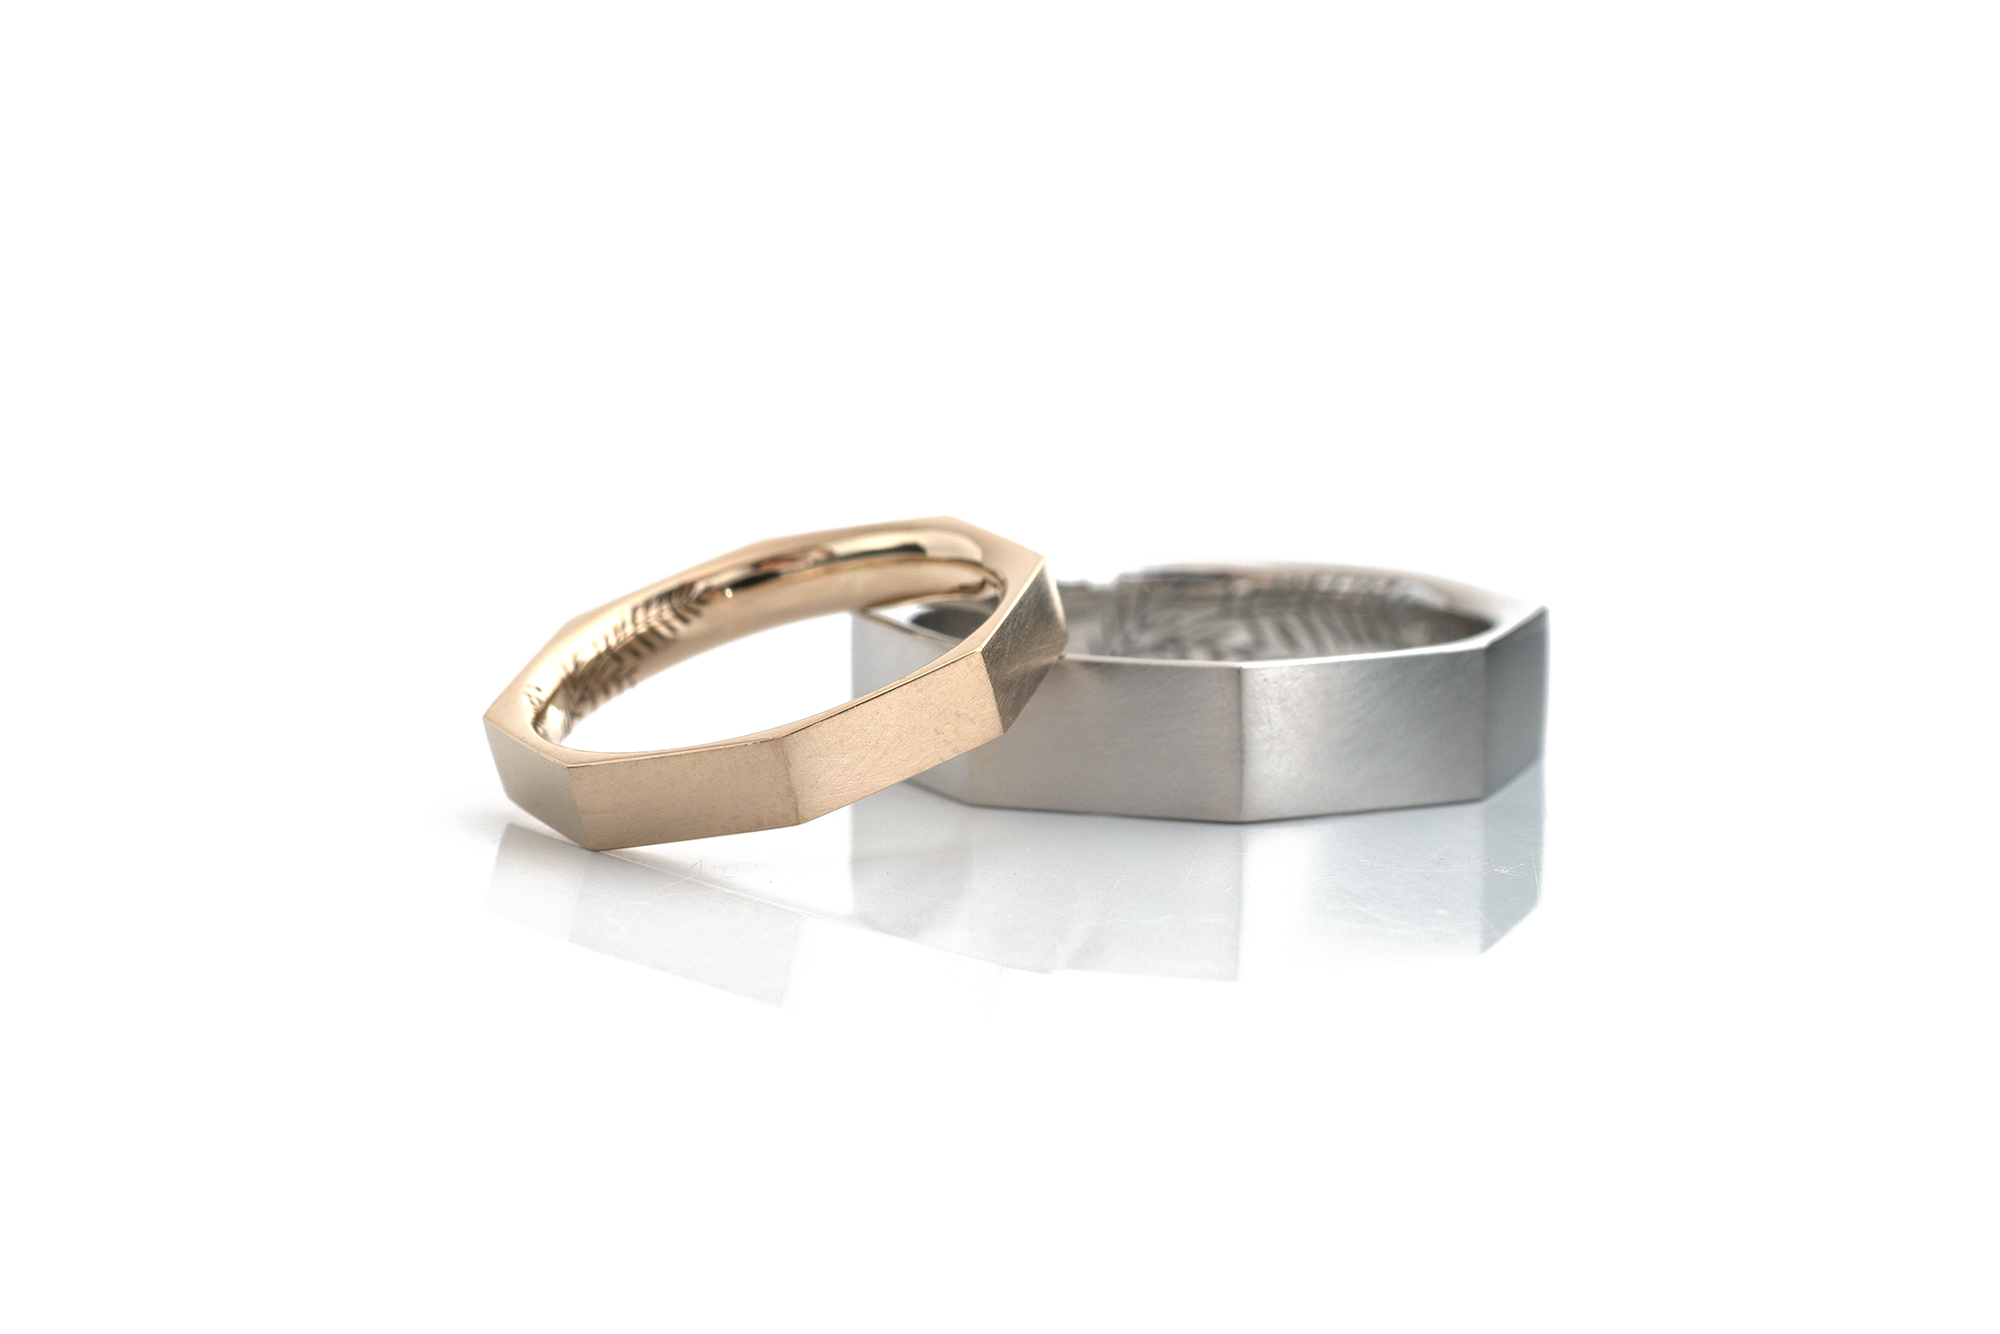 Octagon ring in platinum and champagne gold #屋久島でつくる結婚指輪